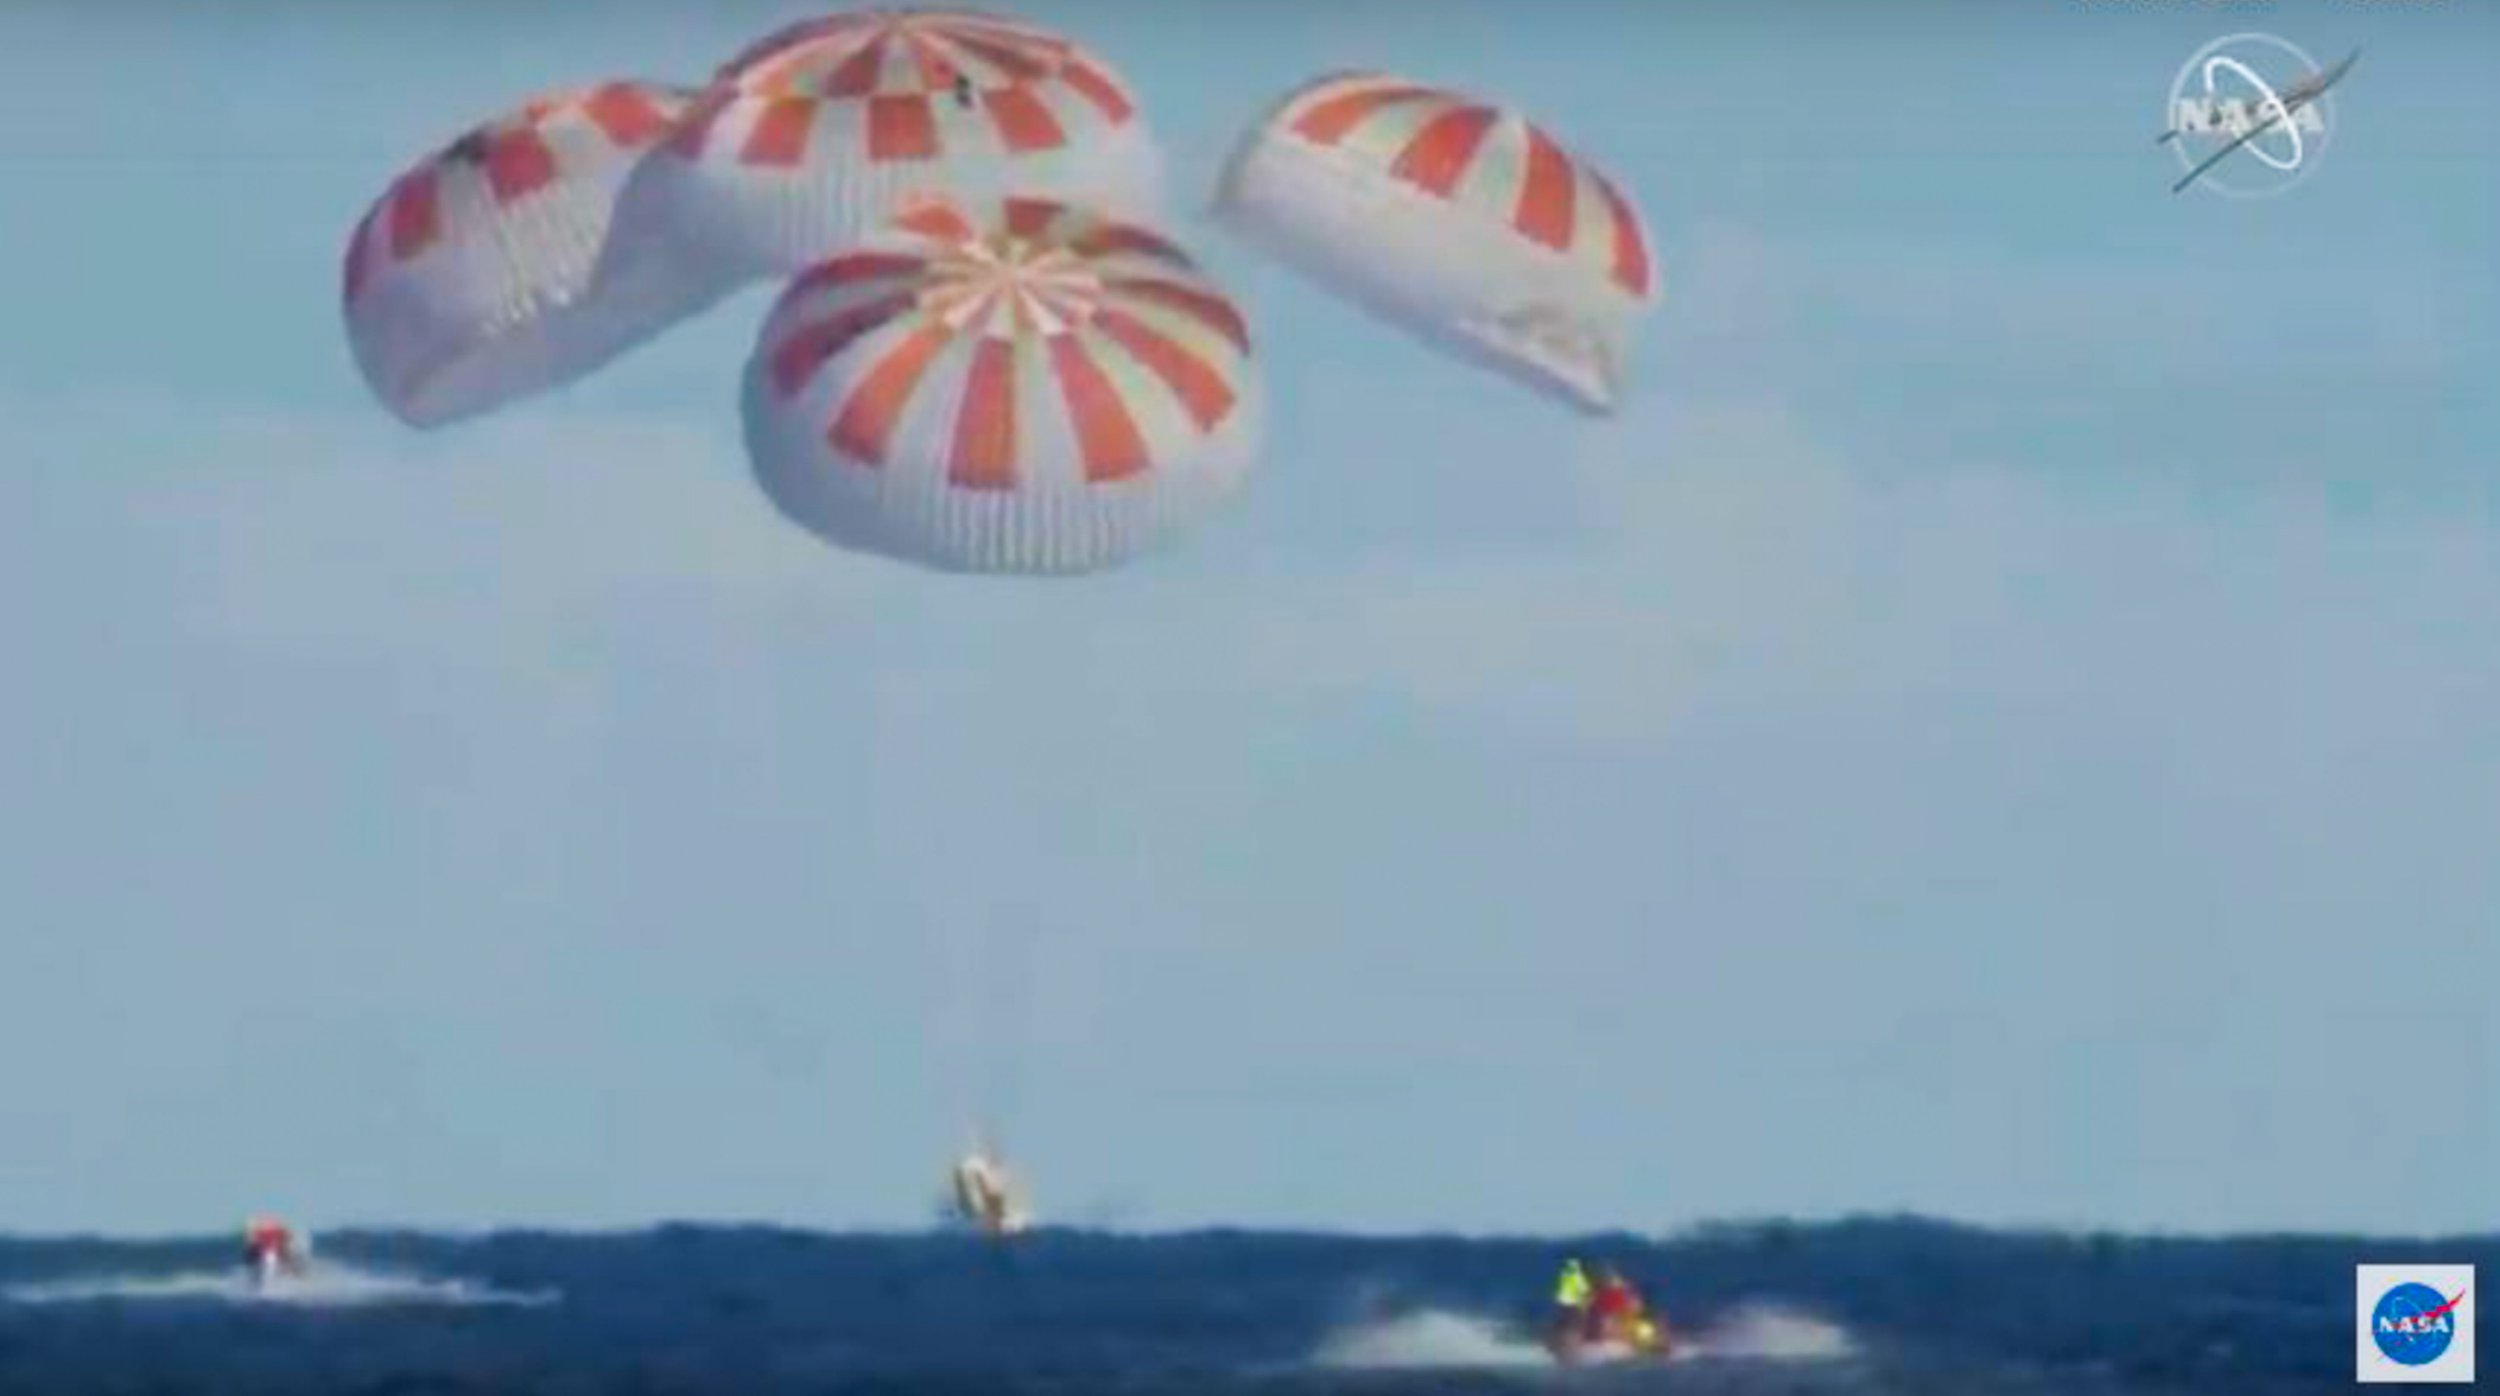 SpaceX Dragon Crew capsule splashes back down to Earth